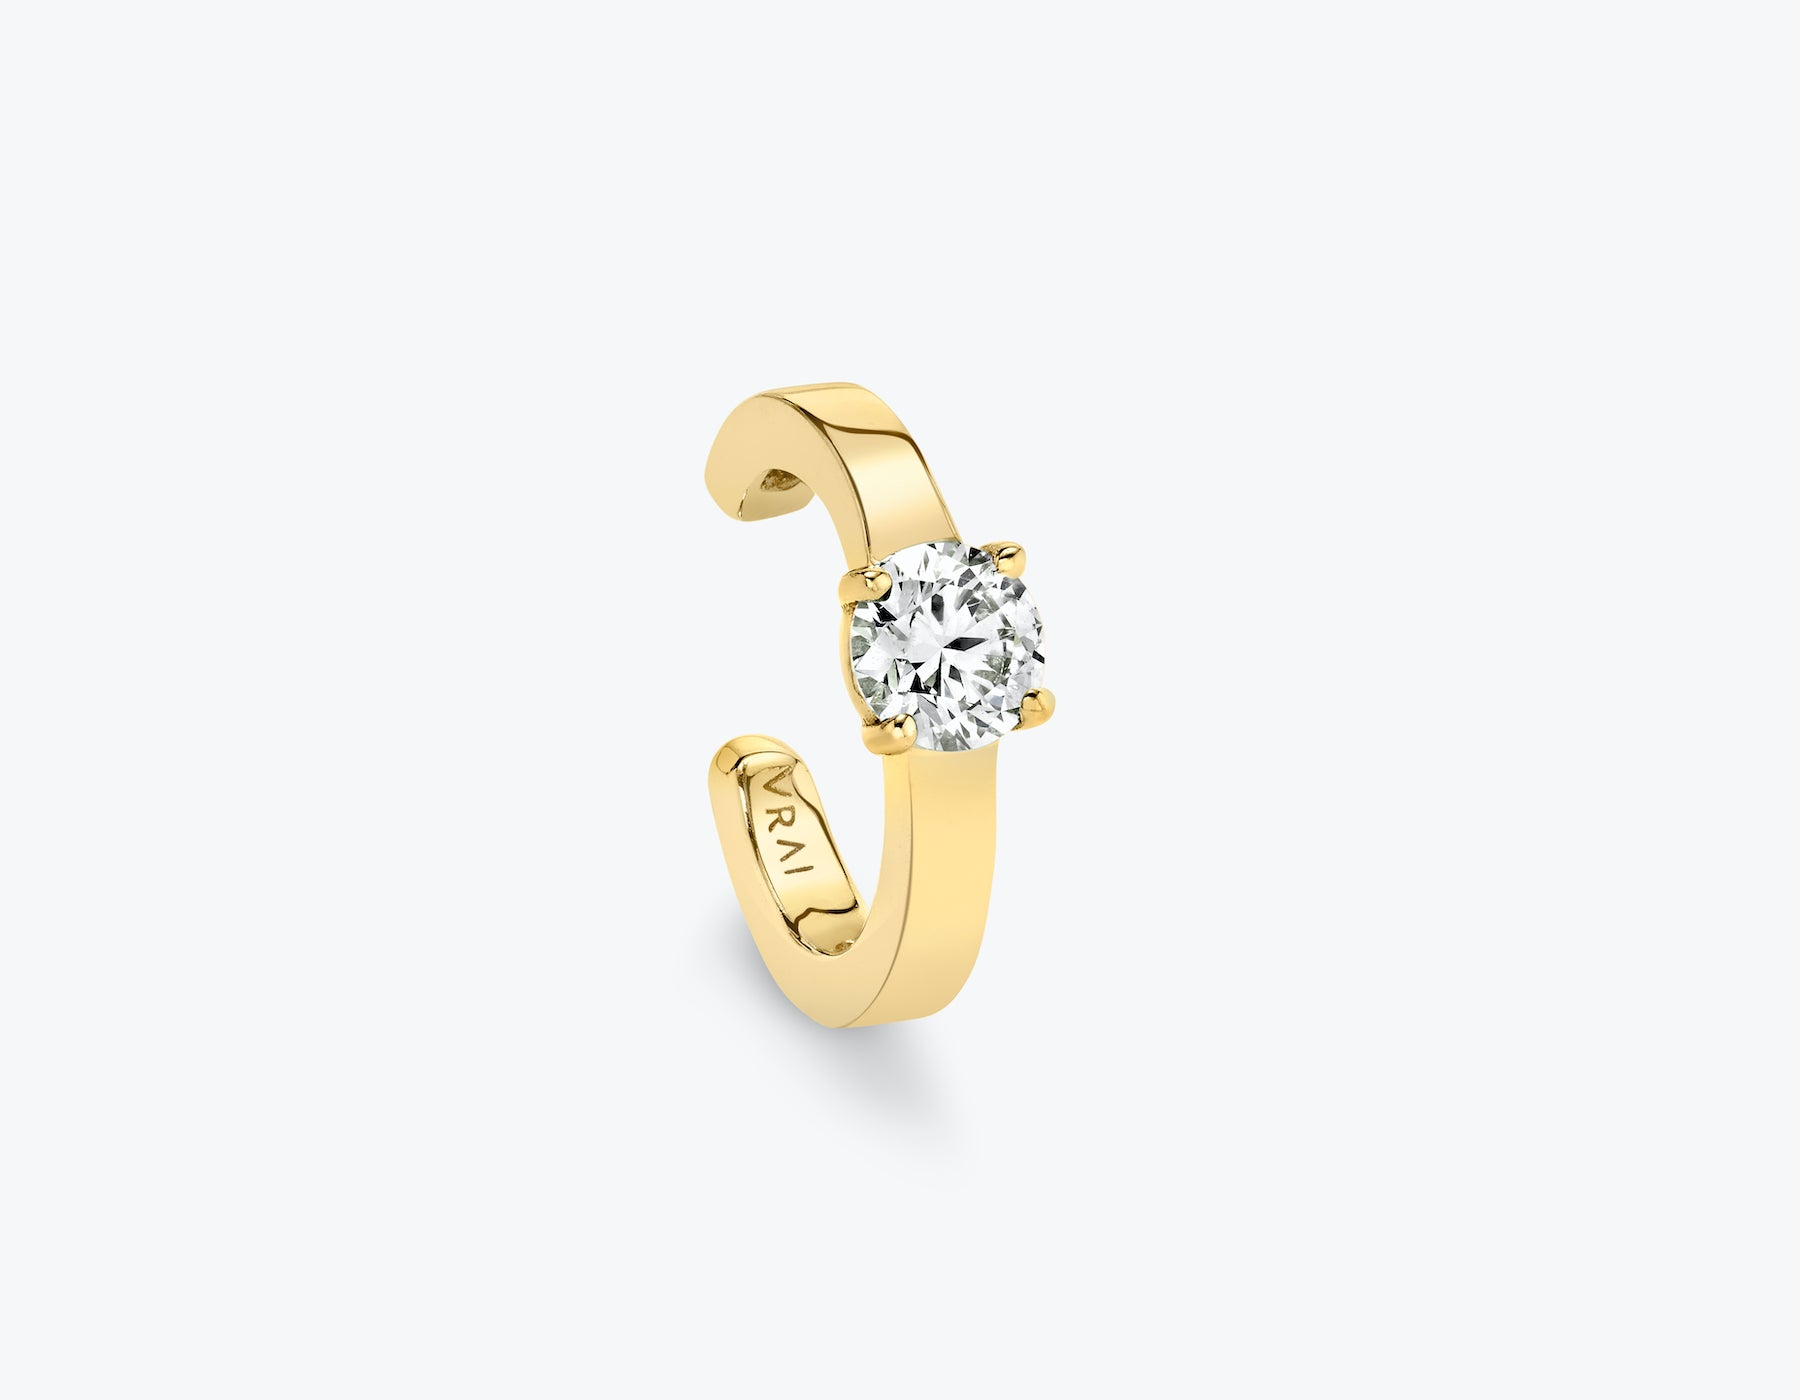 VRAI round brilliant diamond ear cuff 14k yellow gold sustainably created diamond